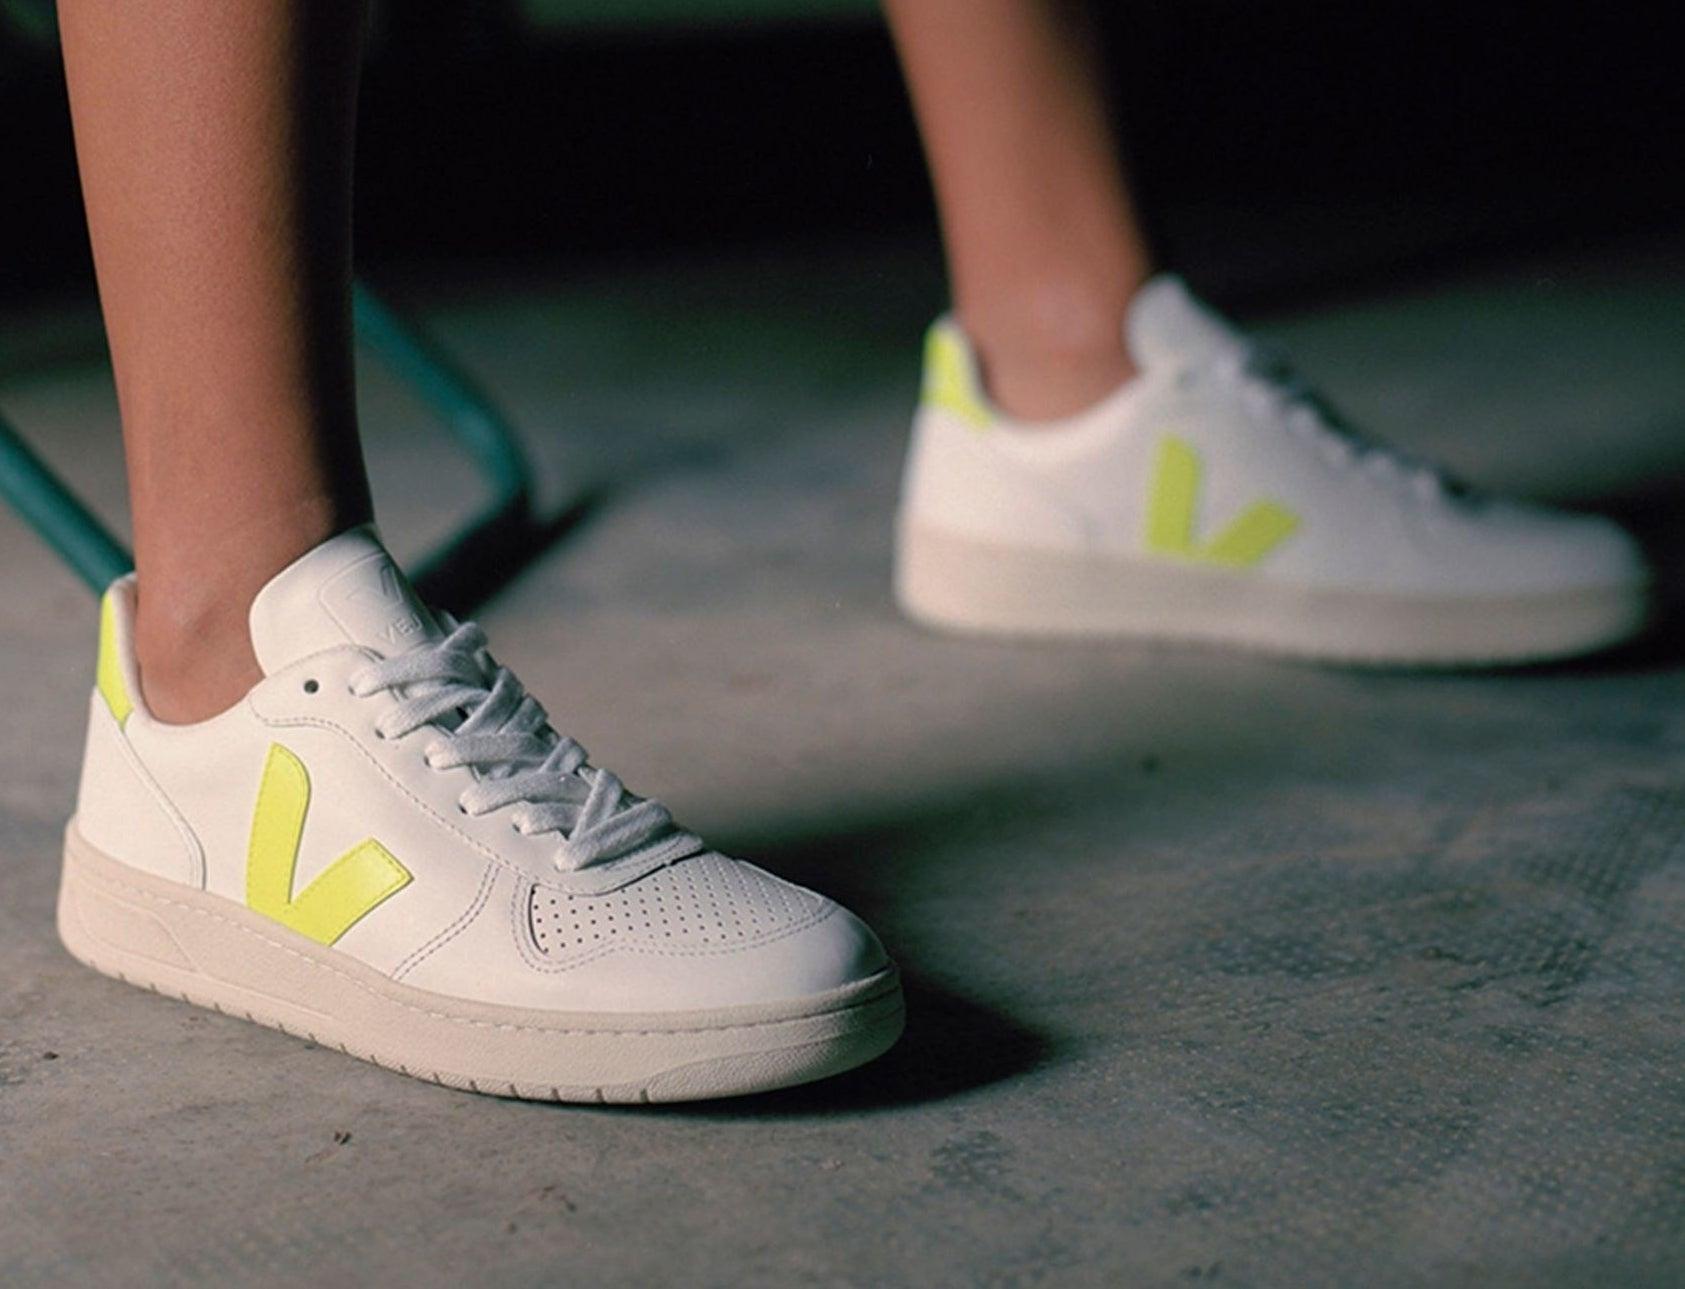 model wearing white sneakers with neon yellow detailing